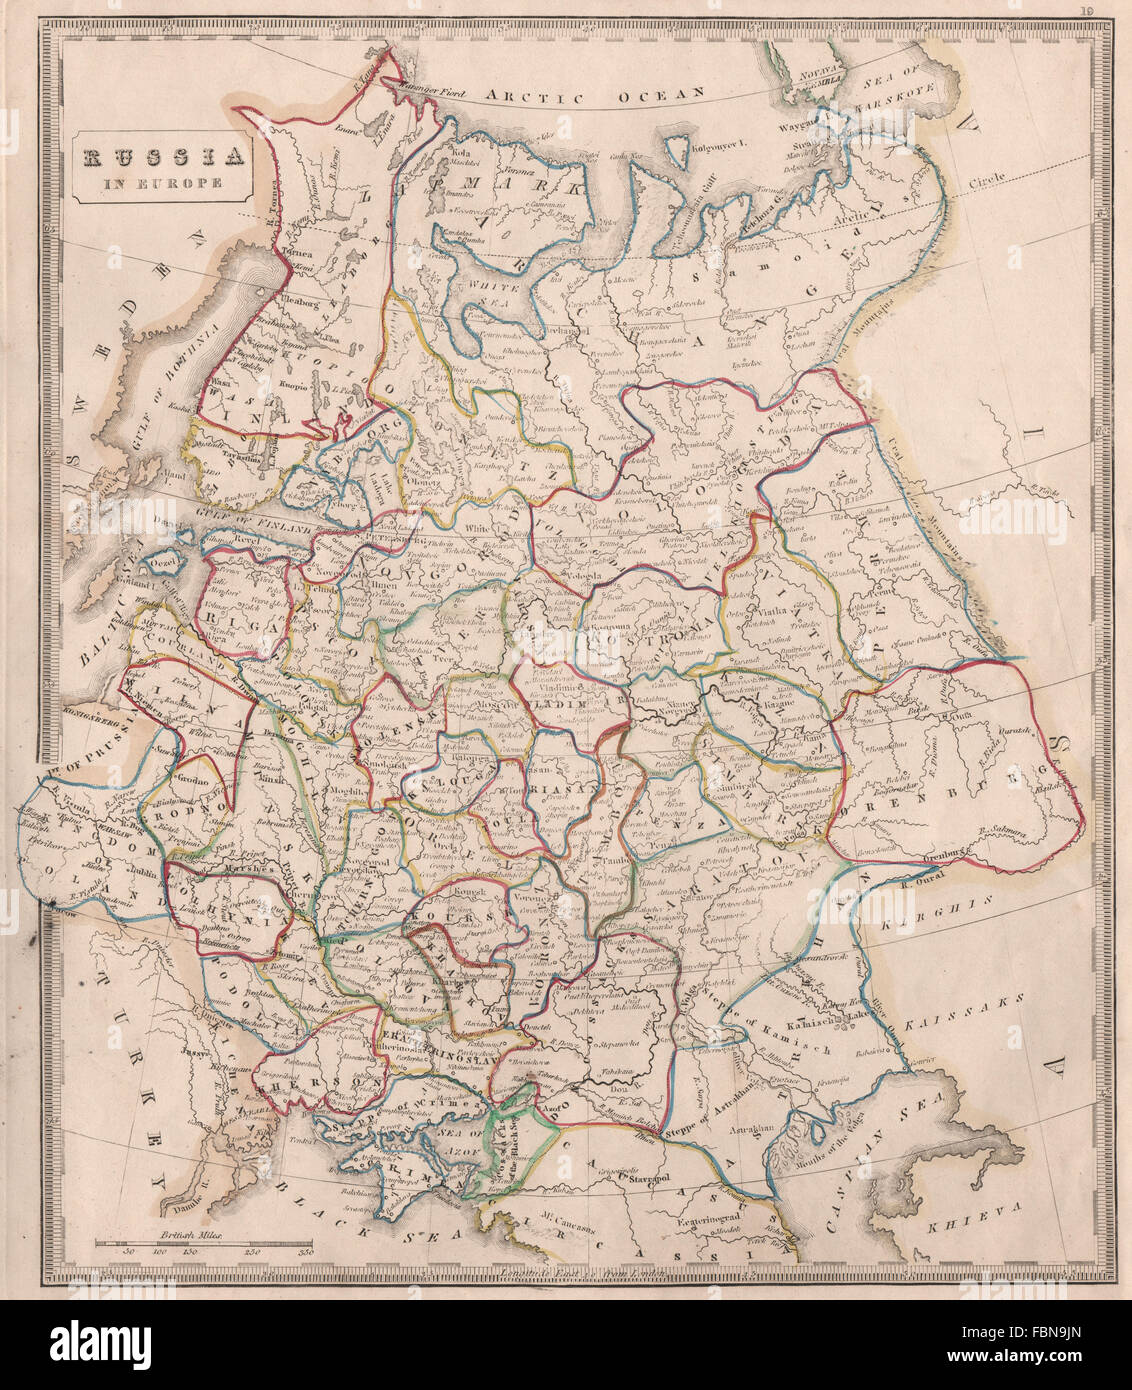 RUSSIA IN EUROPE. Oblasts U0026 Rivers. Kingdom Of Poland. OOC. JOHNSON, 1850  Map